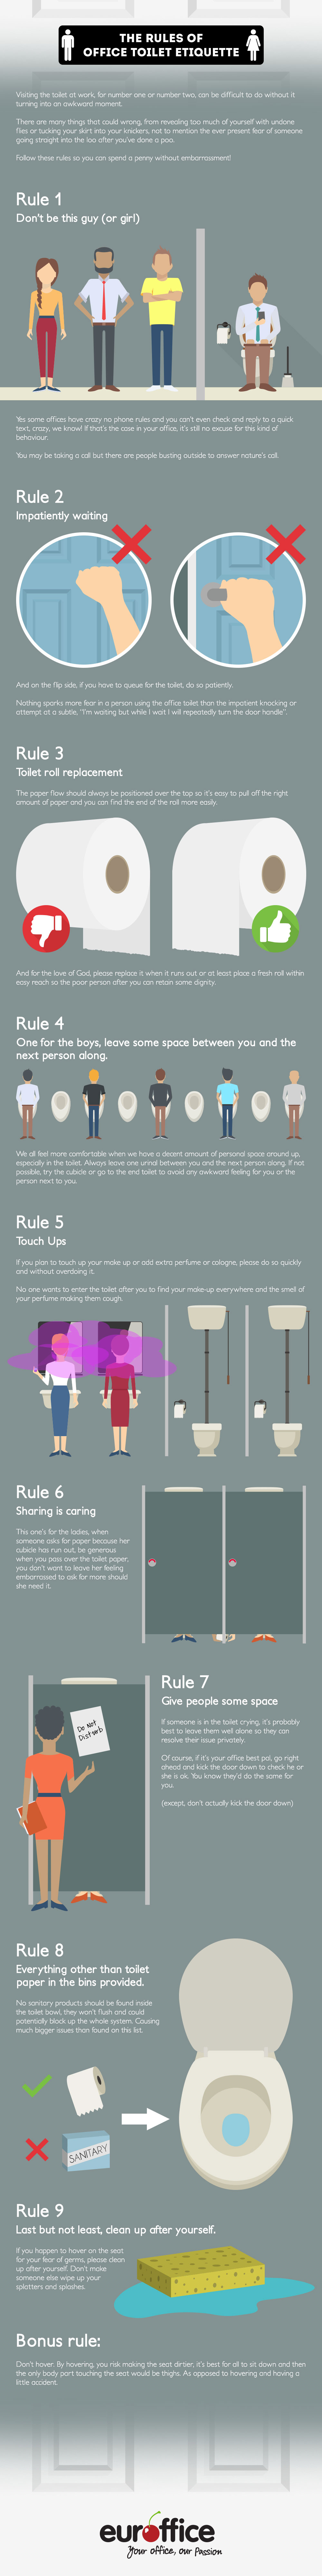 Office Toilet Etiquette